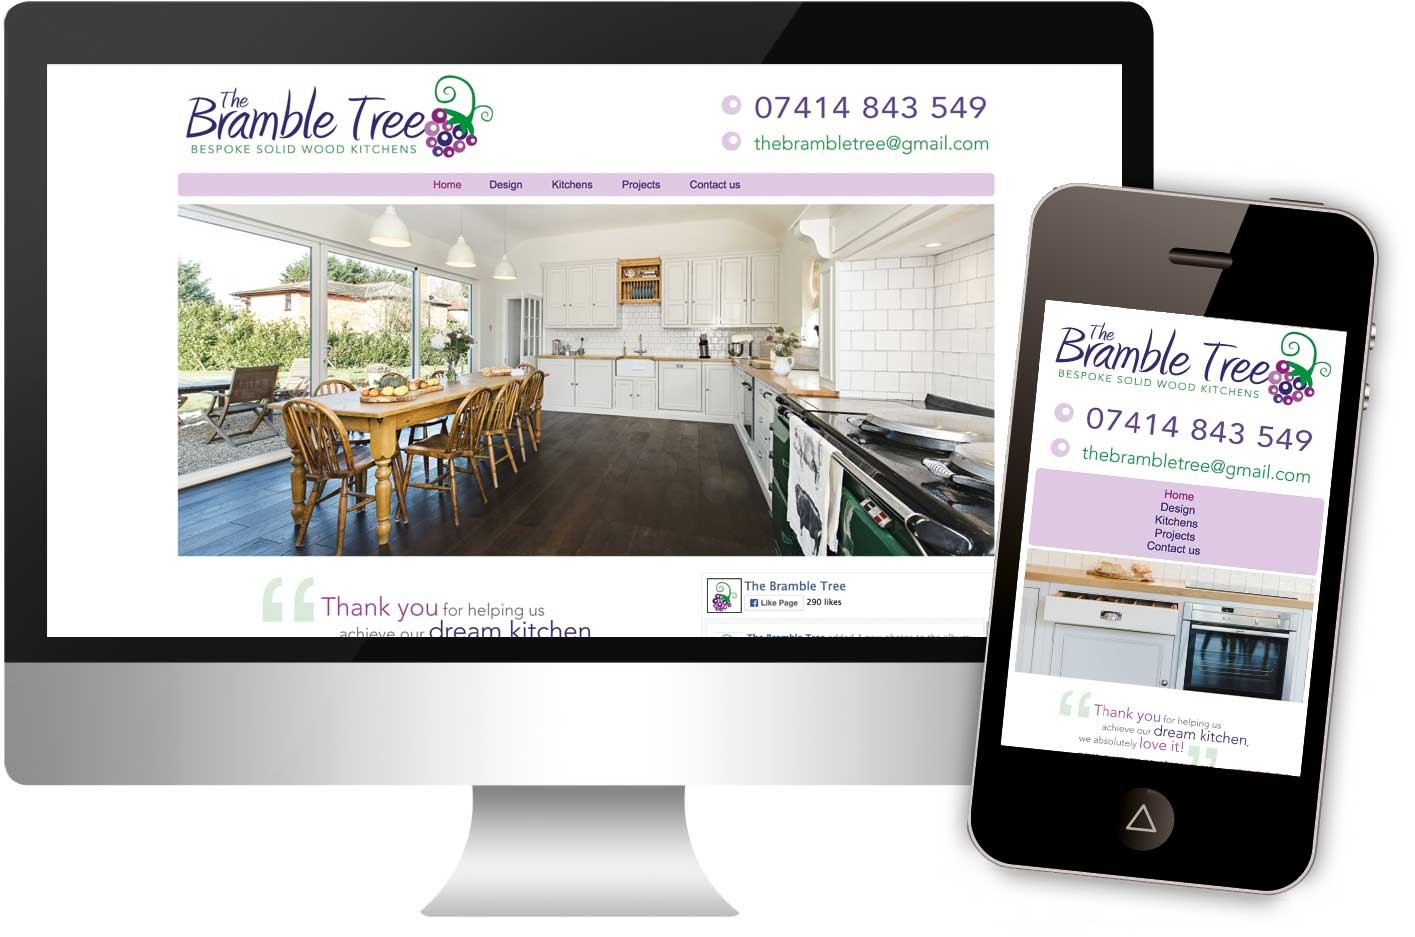 Bramble Tree Kitchens website, launched in April 2016, responsive web design.